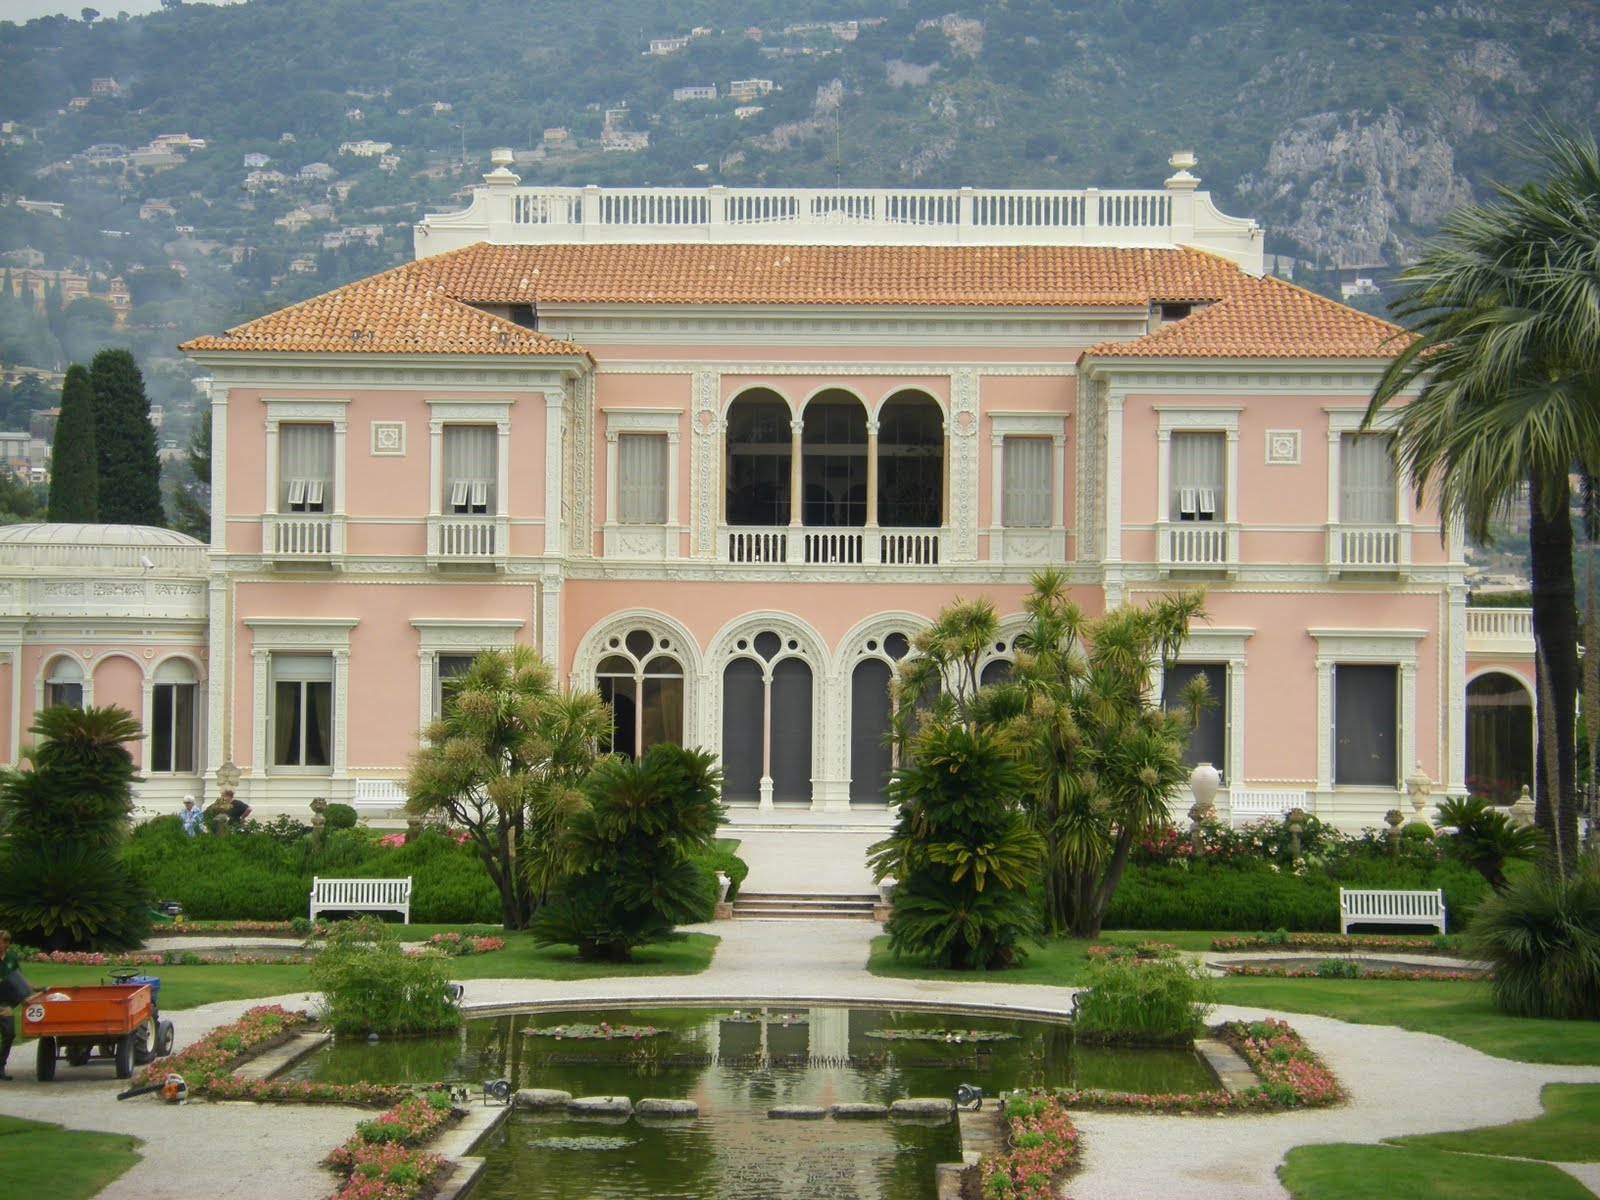 A box of chocolates villa jardins ephrussi de rothschild for Jardin villa rothschild